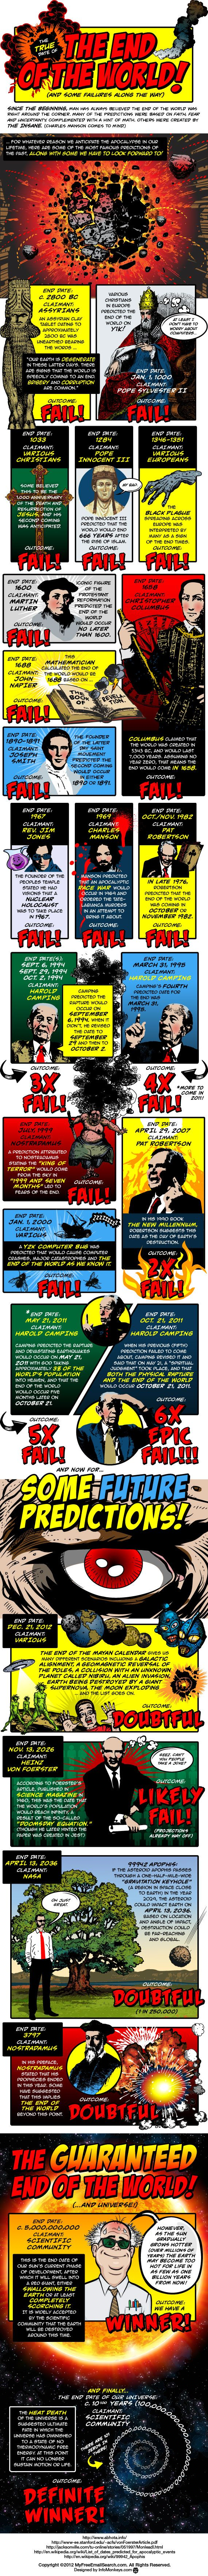 The True Date Of The End Of The World... And some Failures Along The Way #infographic